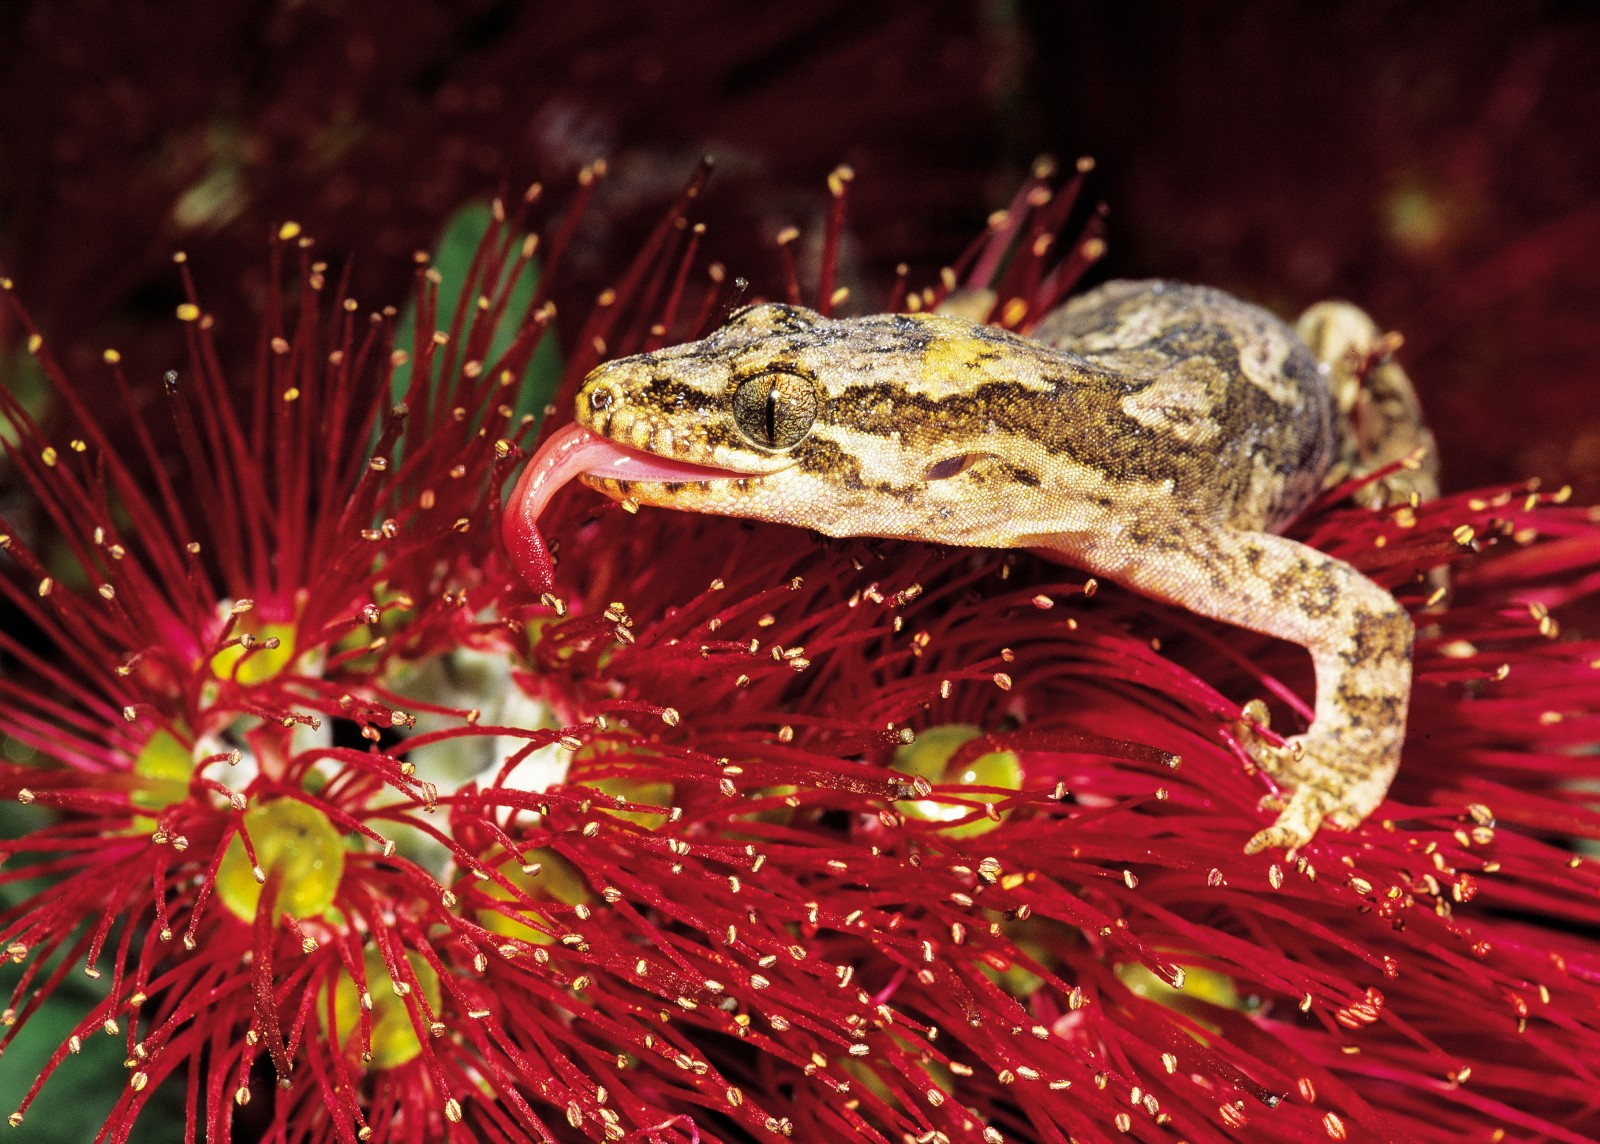 Among the 14 or so species of reptile on little Barrier are Duvaucel's gecko (at up to 25 cm, including the tail, one of the largest geckos in the world), the very rare chevron skink (found only on Little and Great Barrier Islands), and the Pacific gecko, seen here licking nectar from a pohutukawa blossom. Geckos are thought to have once been major pollinators of many of New Zealand's native flowers.